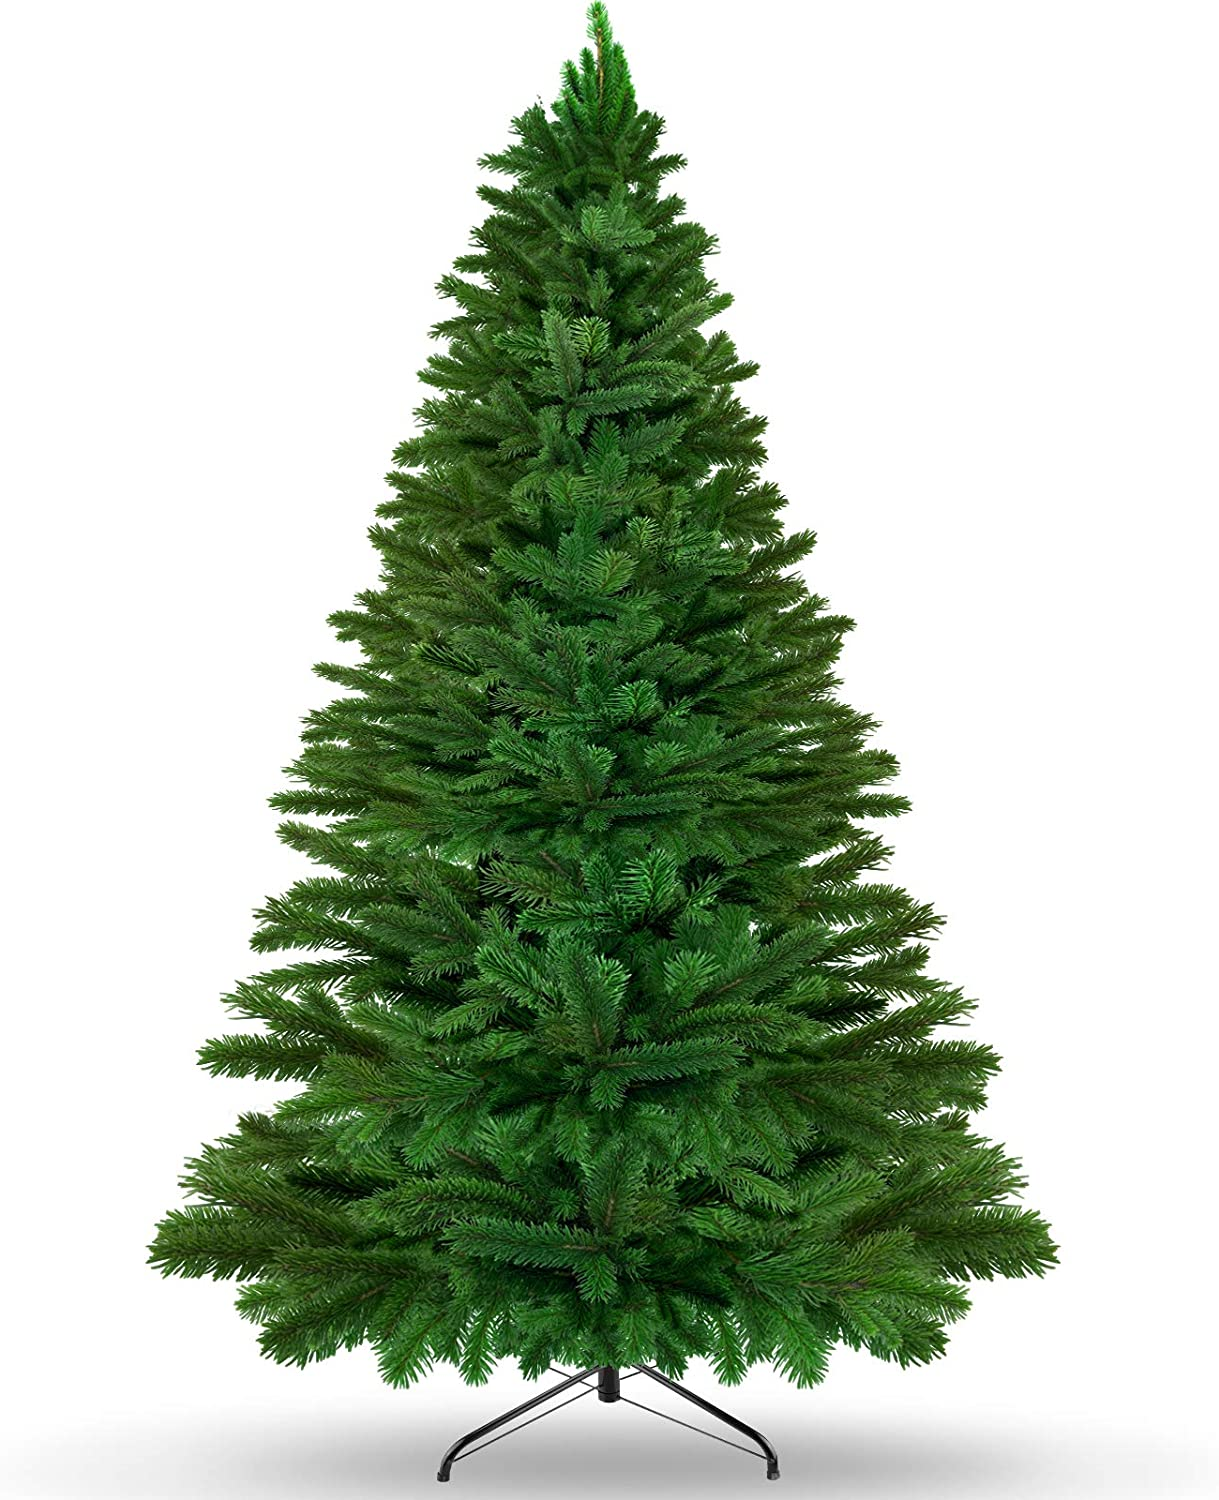 KKTICK Artificial Christmas Tree, Upgrade Fake Xmas Tree with Durable Metal Stand, Easy Assemble, 1422 Branch Tips for Lush Looking, Holiday Decorations for Home and Office, 6ft